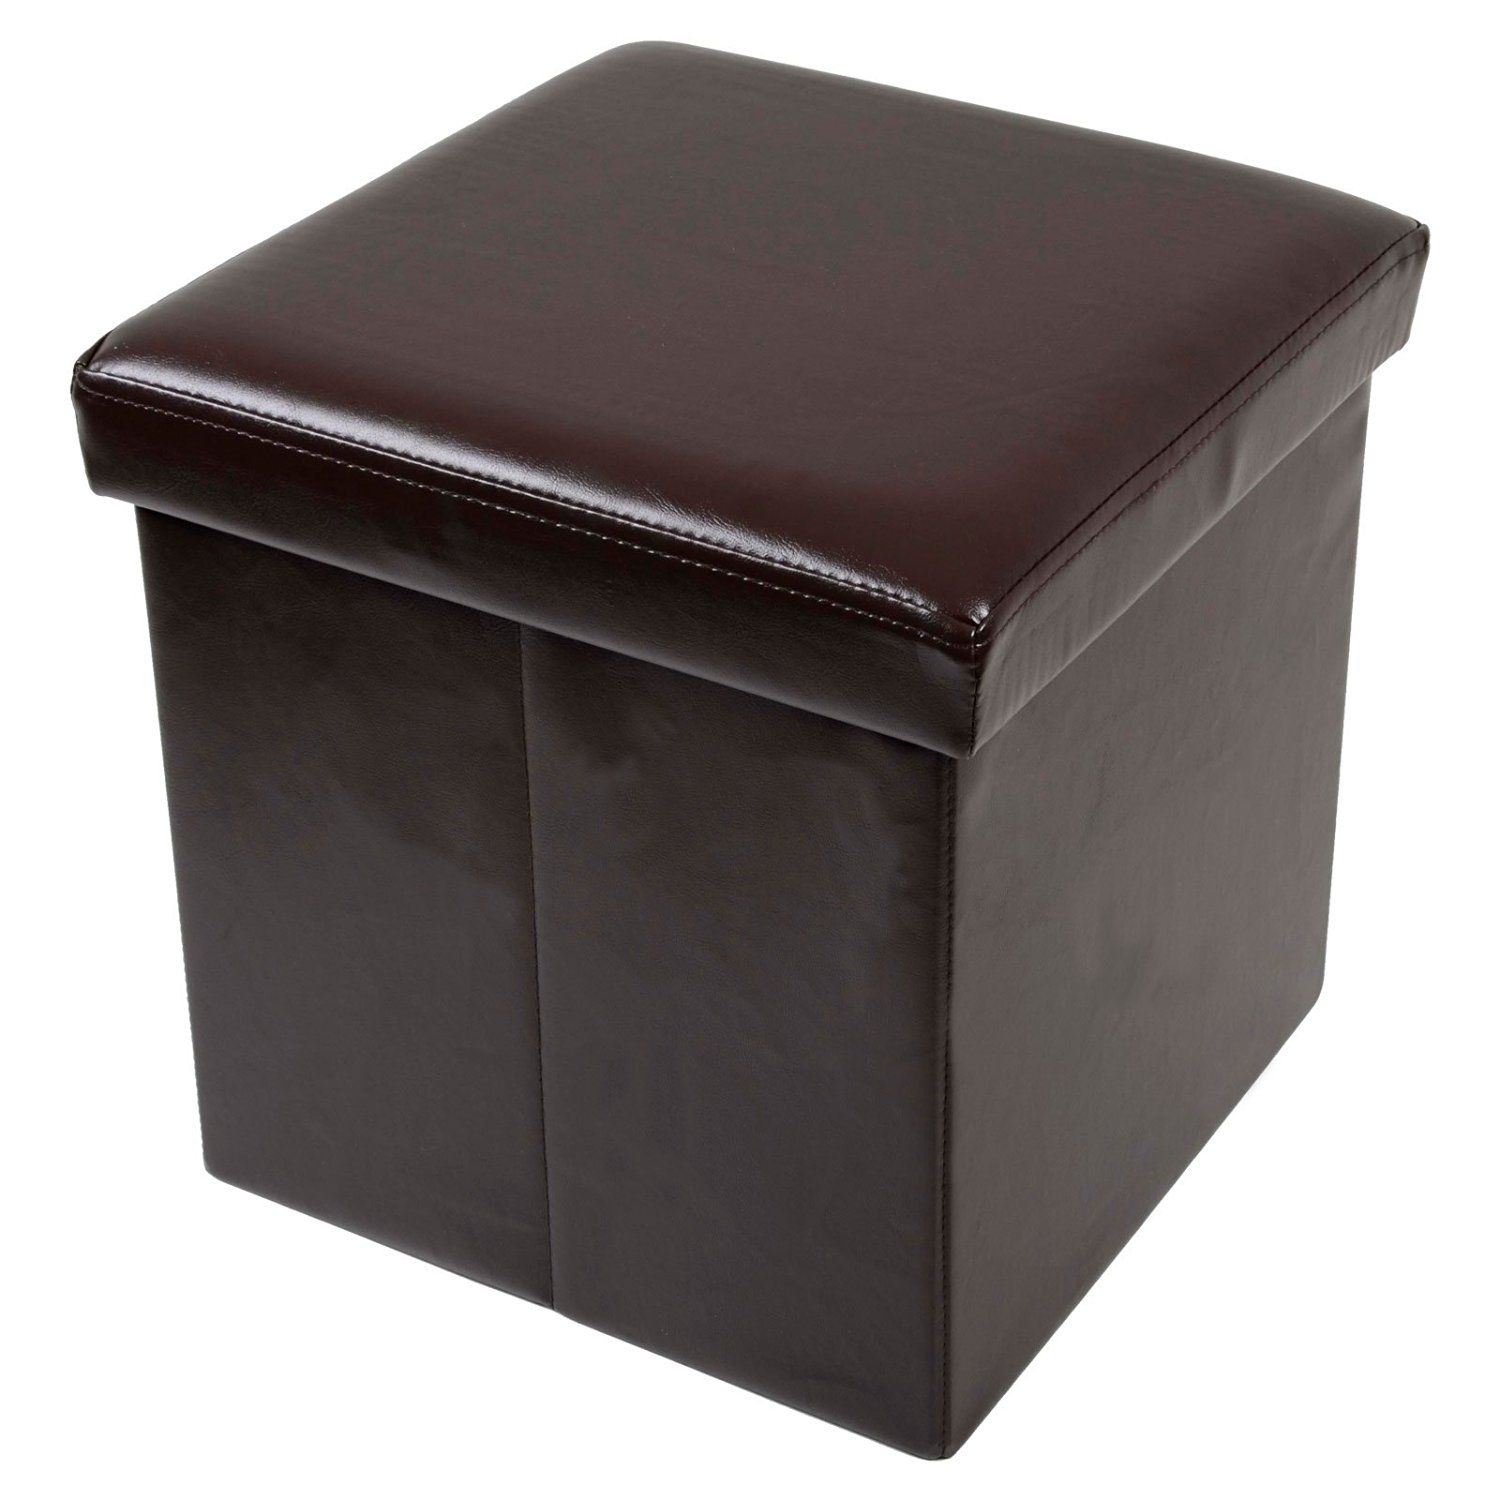 Attractive Folding Storage Stool With Lid Brown Faux Leather 38cm Cube Pouffe Seat  Ottomanu2026